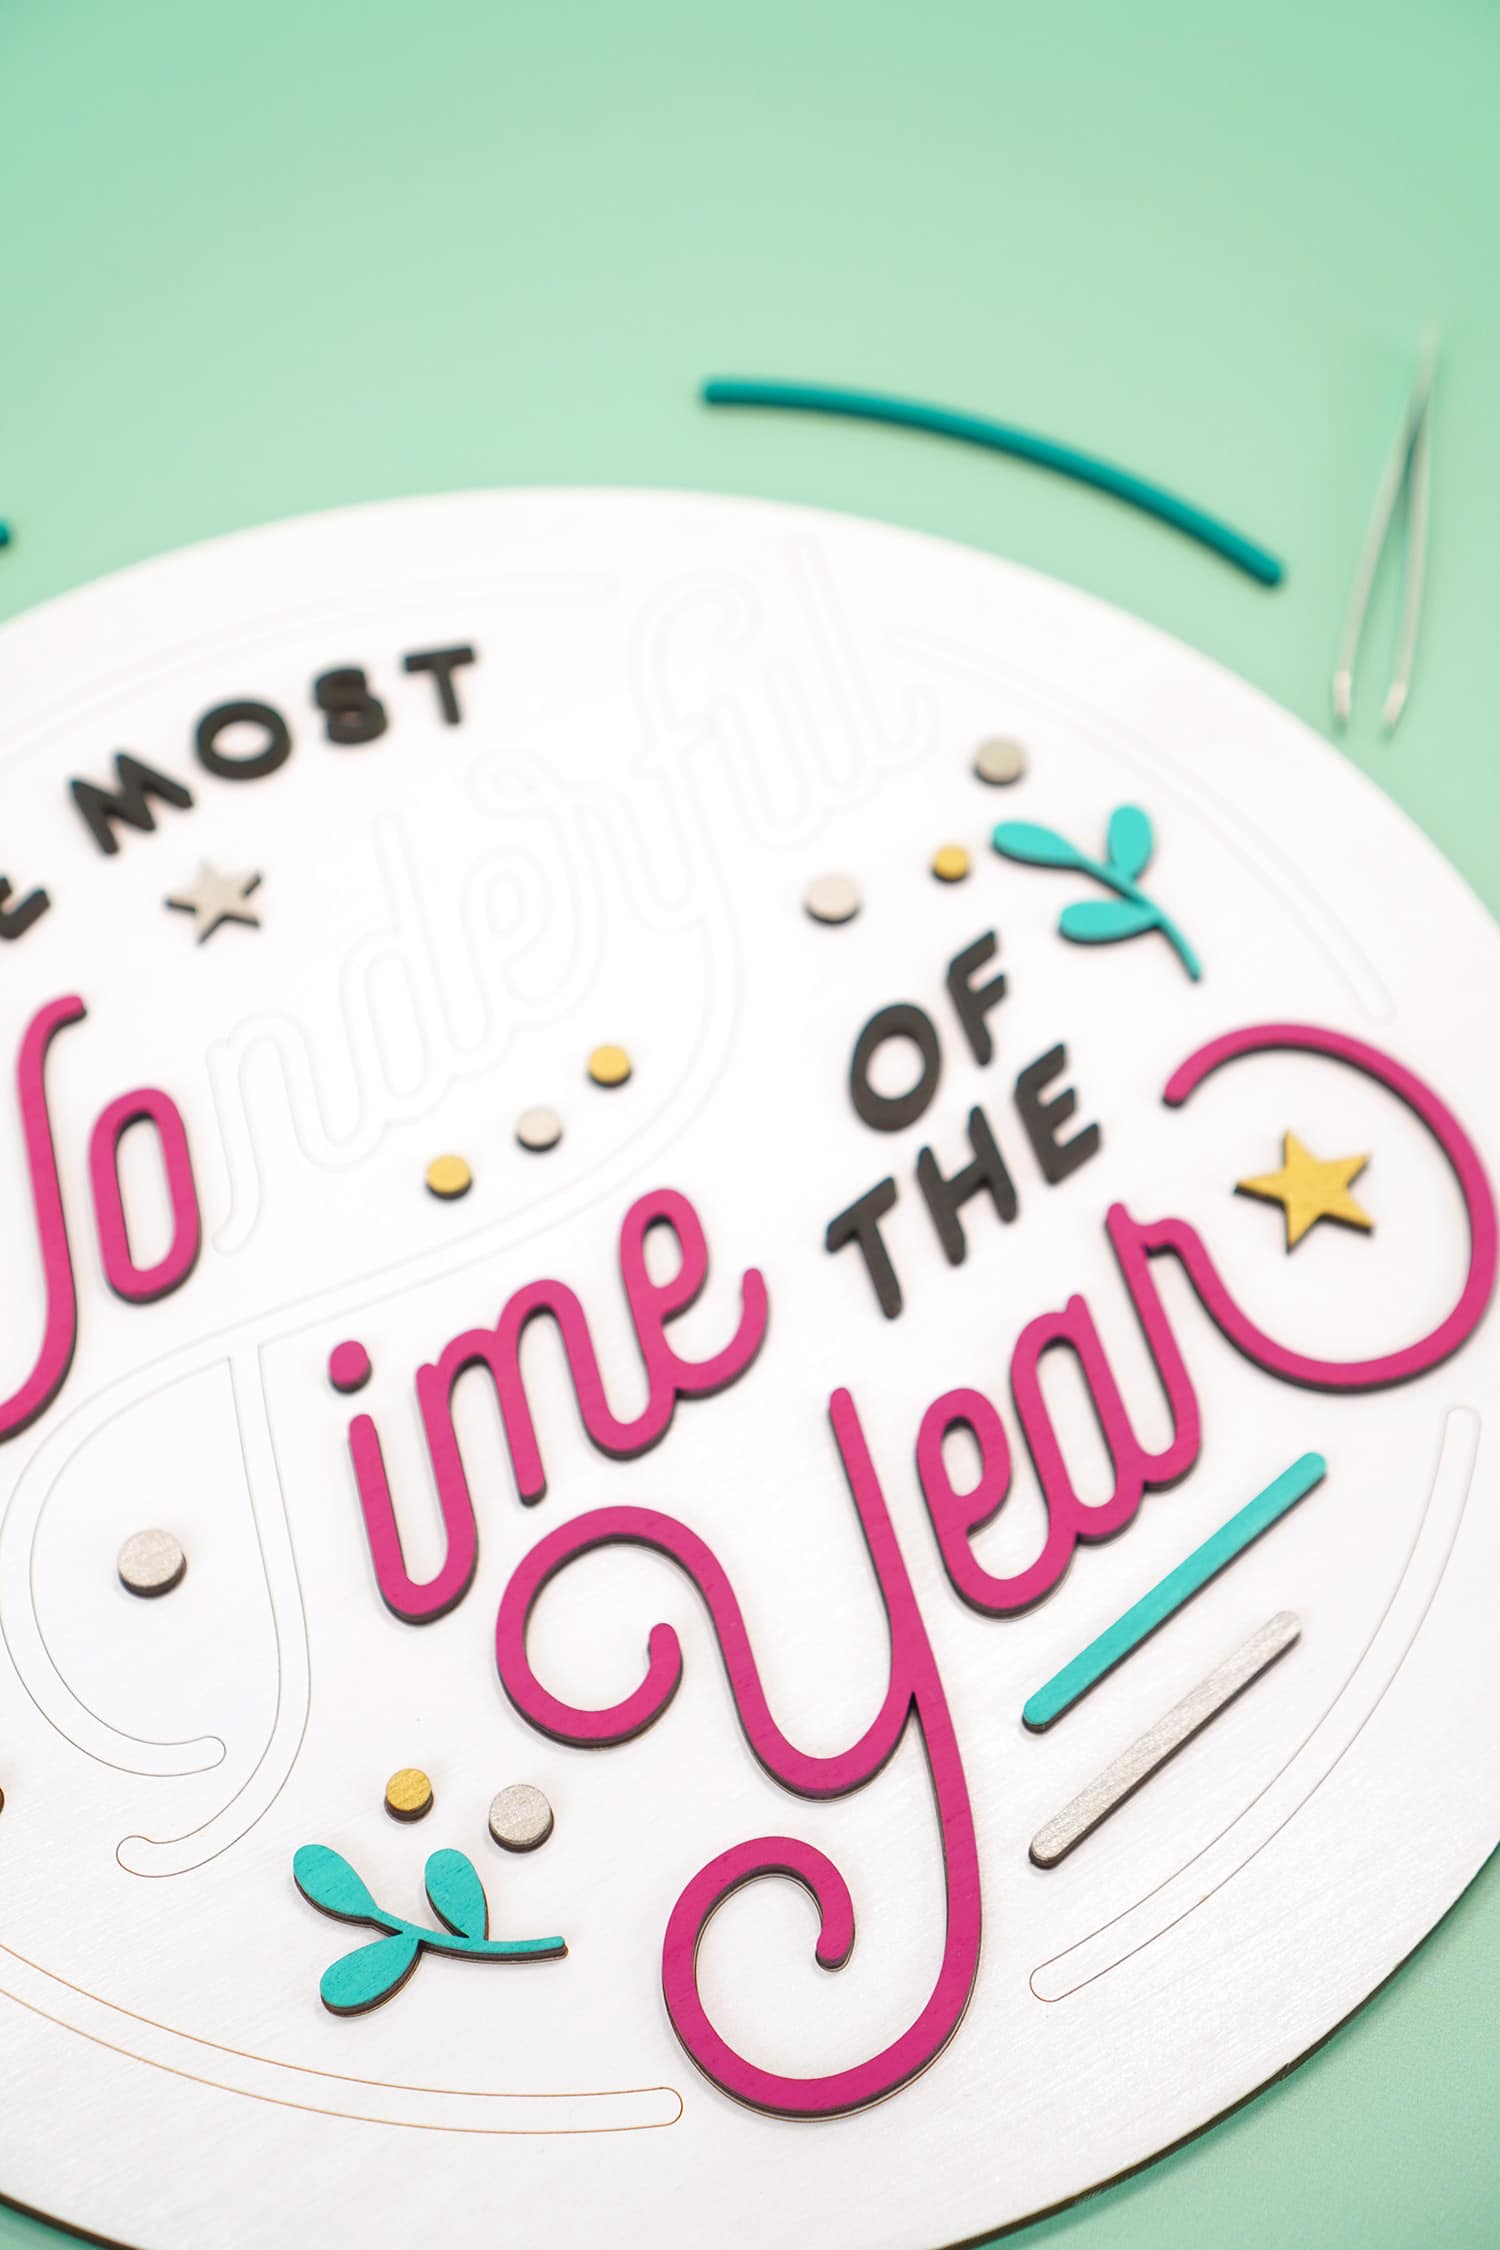 Arranging Glowforge laser cut wood pieces on round wooden sign with tweezers and mint green background